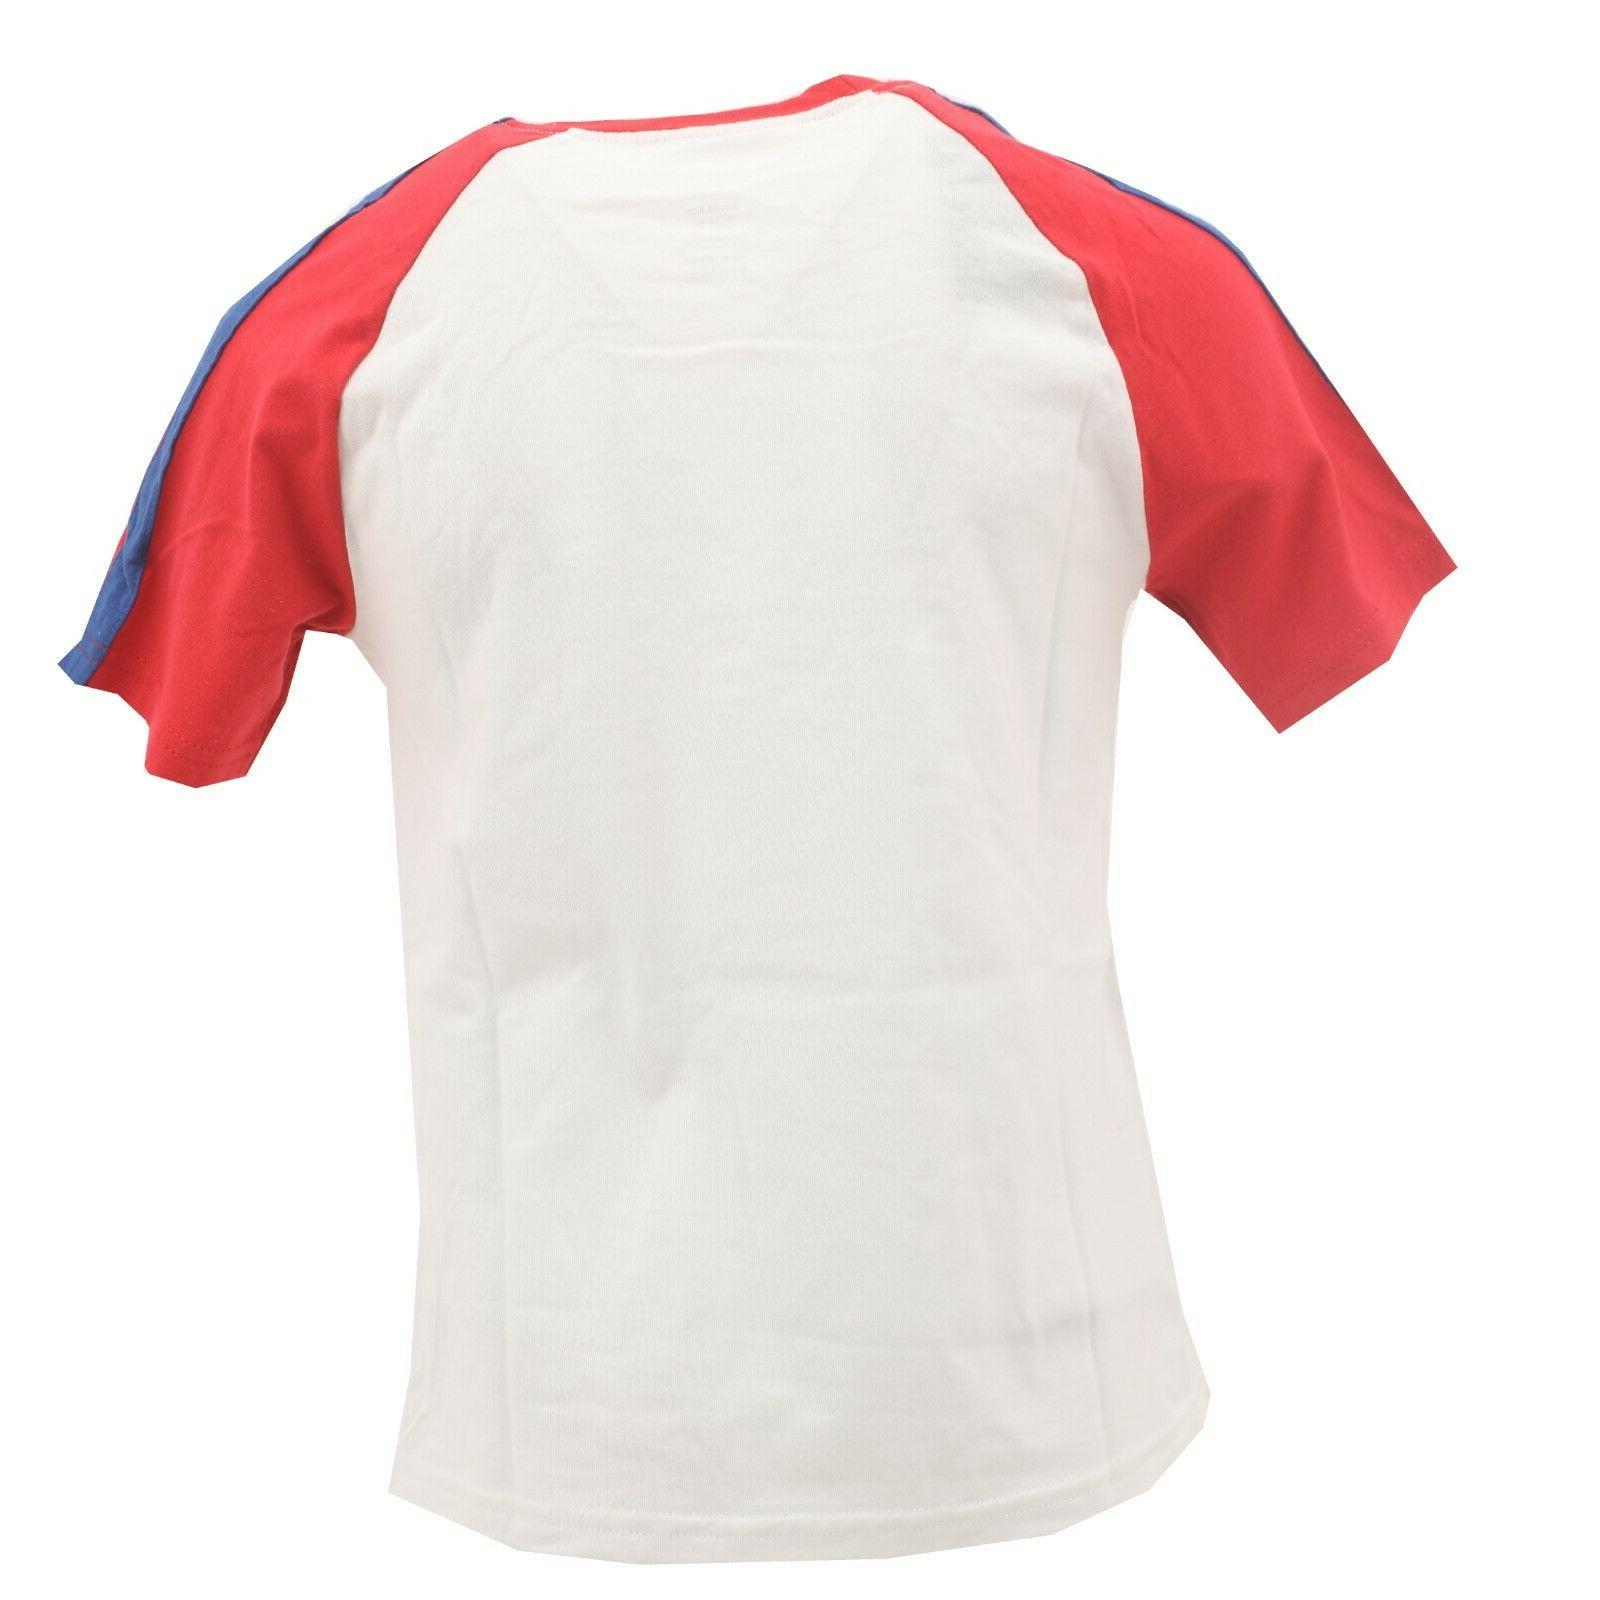 Philadelphia Official MLB Genuine Apparel Youth Size